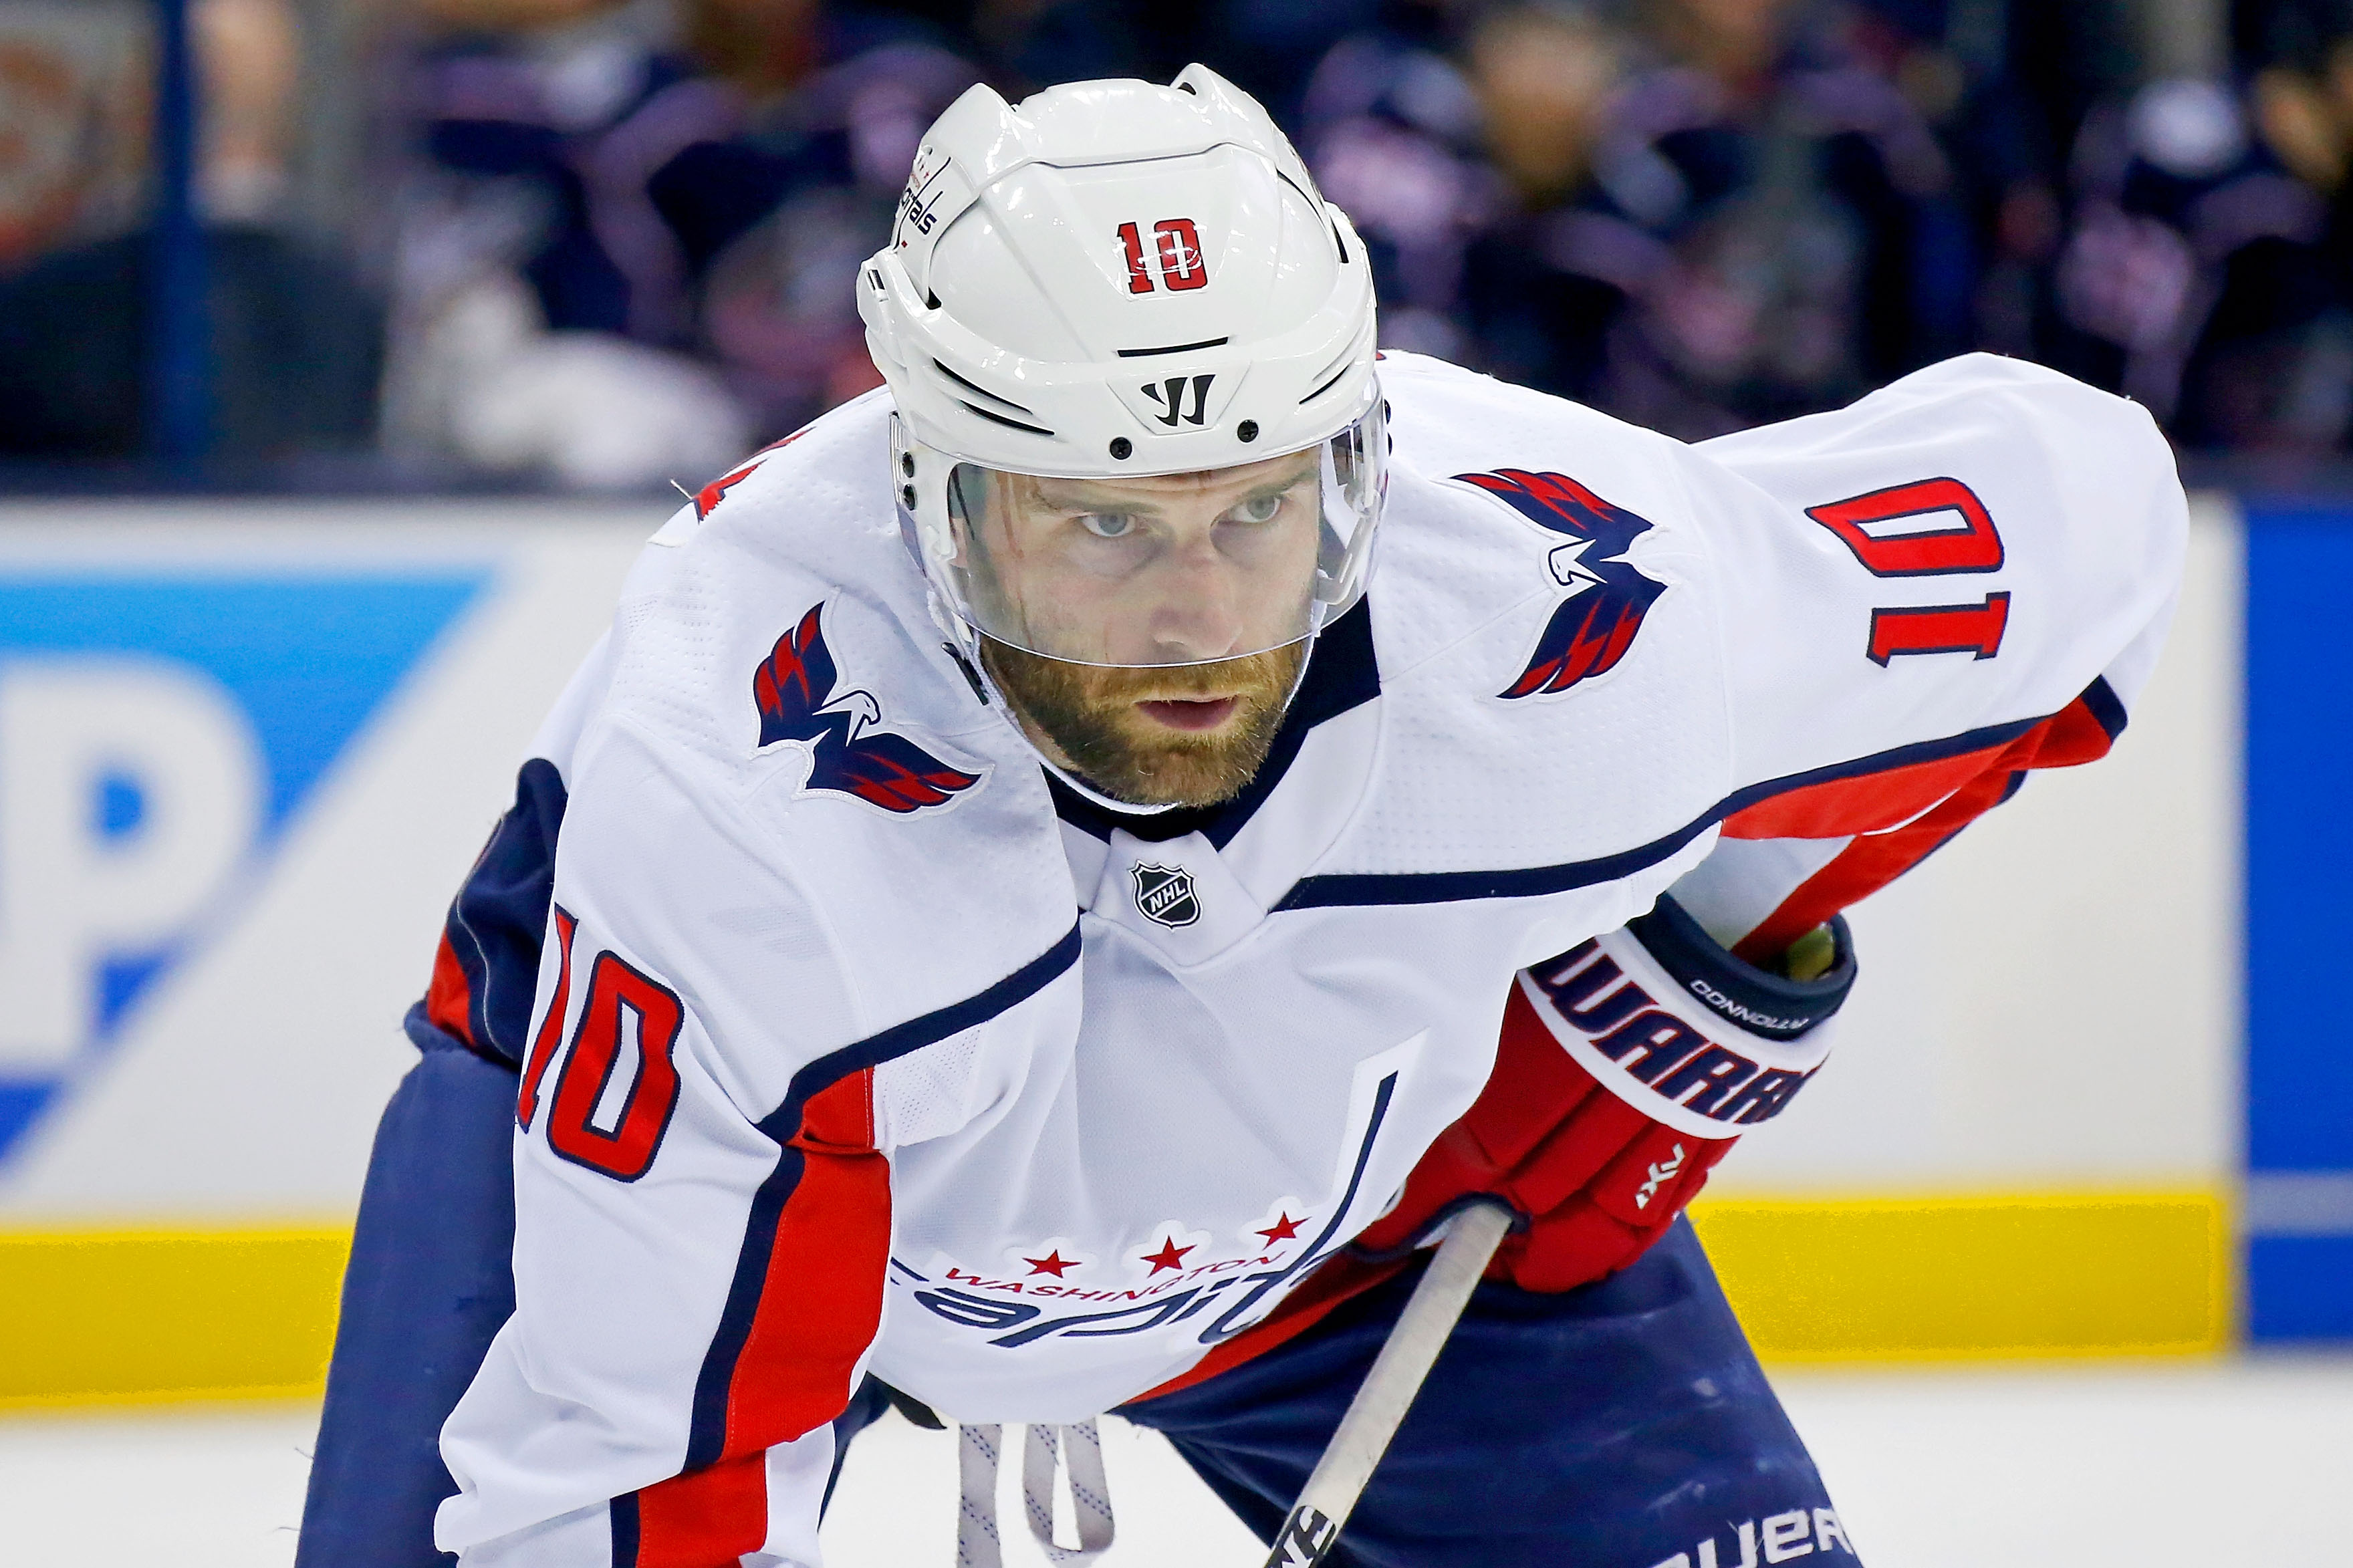 COLUMBUS, OH - APRIL 17:  Brett Connolly #10 of the Washington Capitals lines up for a face-off in Game Three of the Eastern Conference First Round during the 2018 NHL Stanley Cup Playoffs against the Columbus Blue Jackets on April 17, 2018 at Nationwide Arena in Columbus, Ohio. (Photo by Kirk Irwin/Getty Images) *** Local Caption *** Brett Connolly